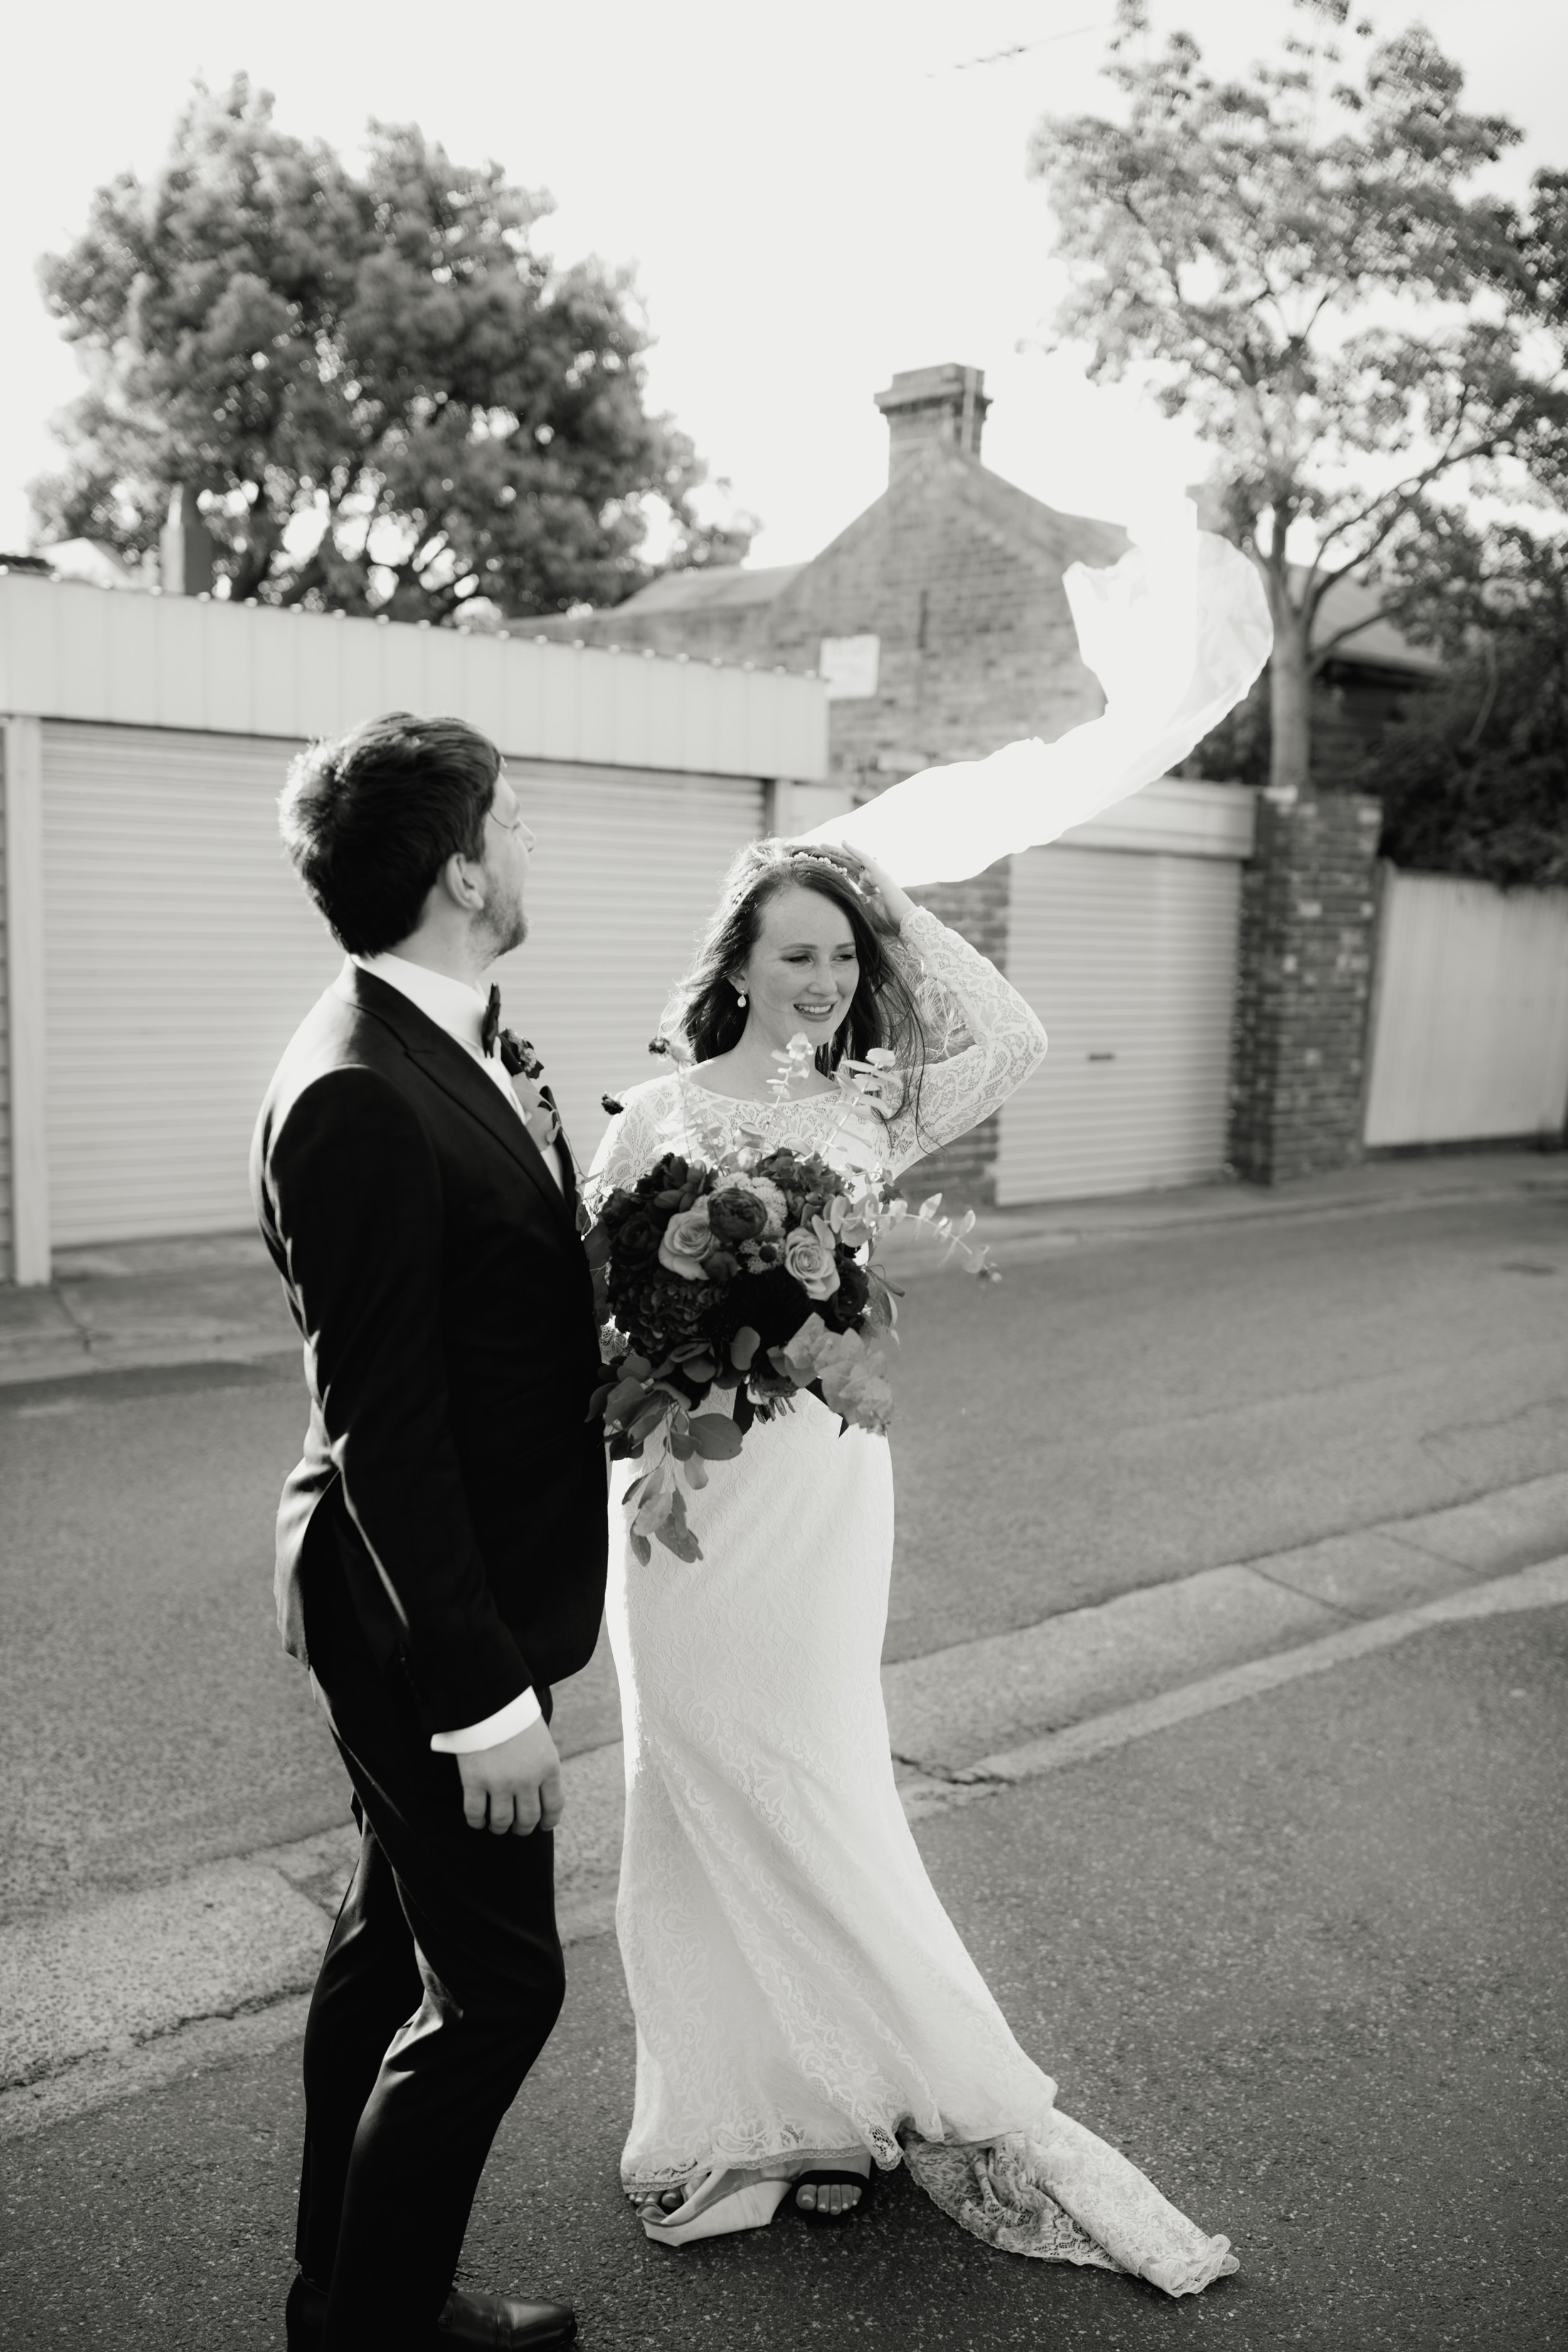 I_Got_You_Babe_Weddings_Emily_Matt_Rupert_Glasshaus_Melbourne0124.JPG